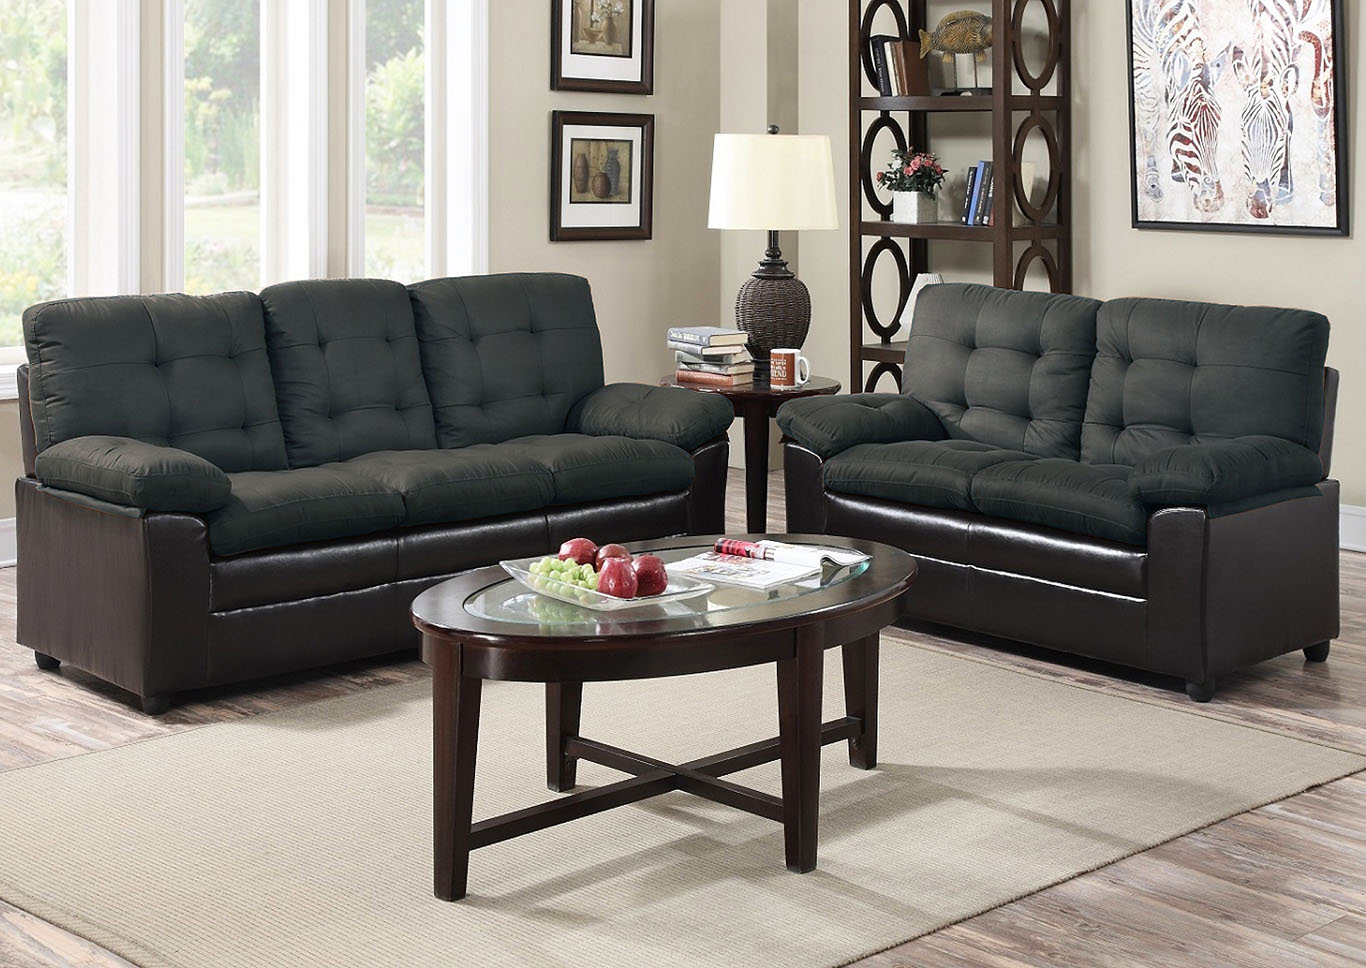 Roses Flooring And Furniture Grey Microfiber Loveseat